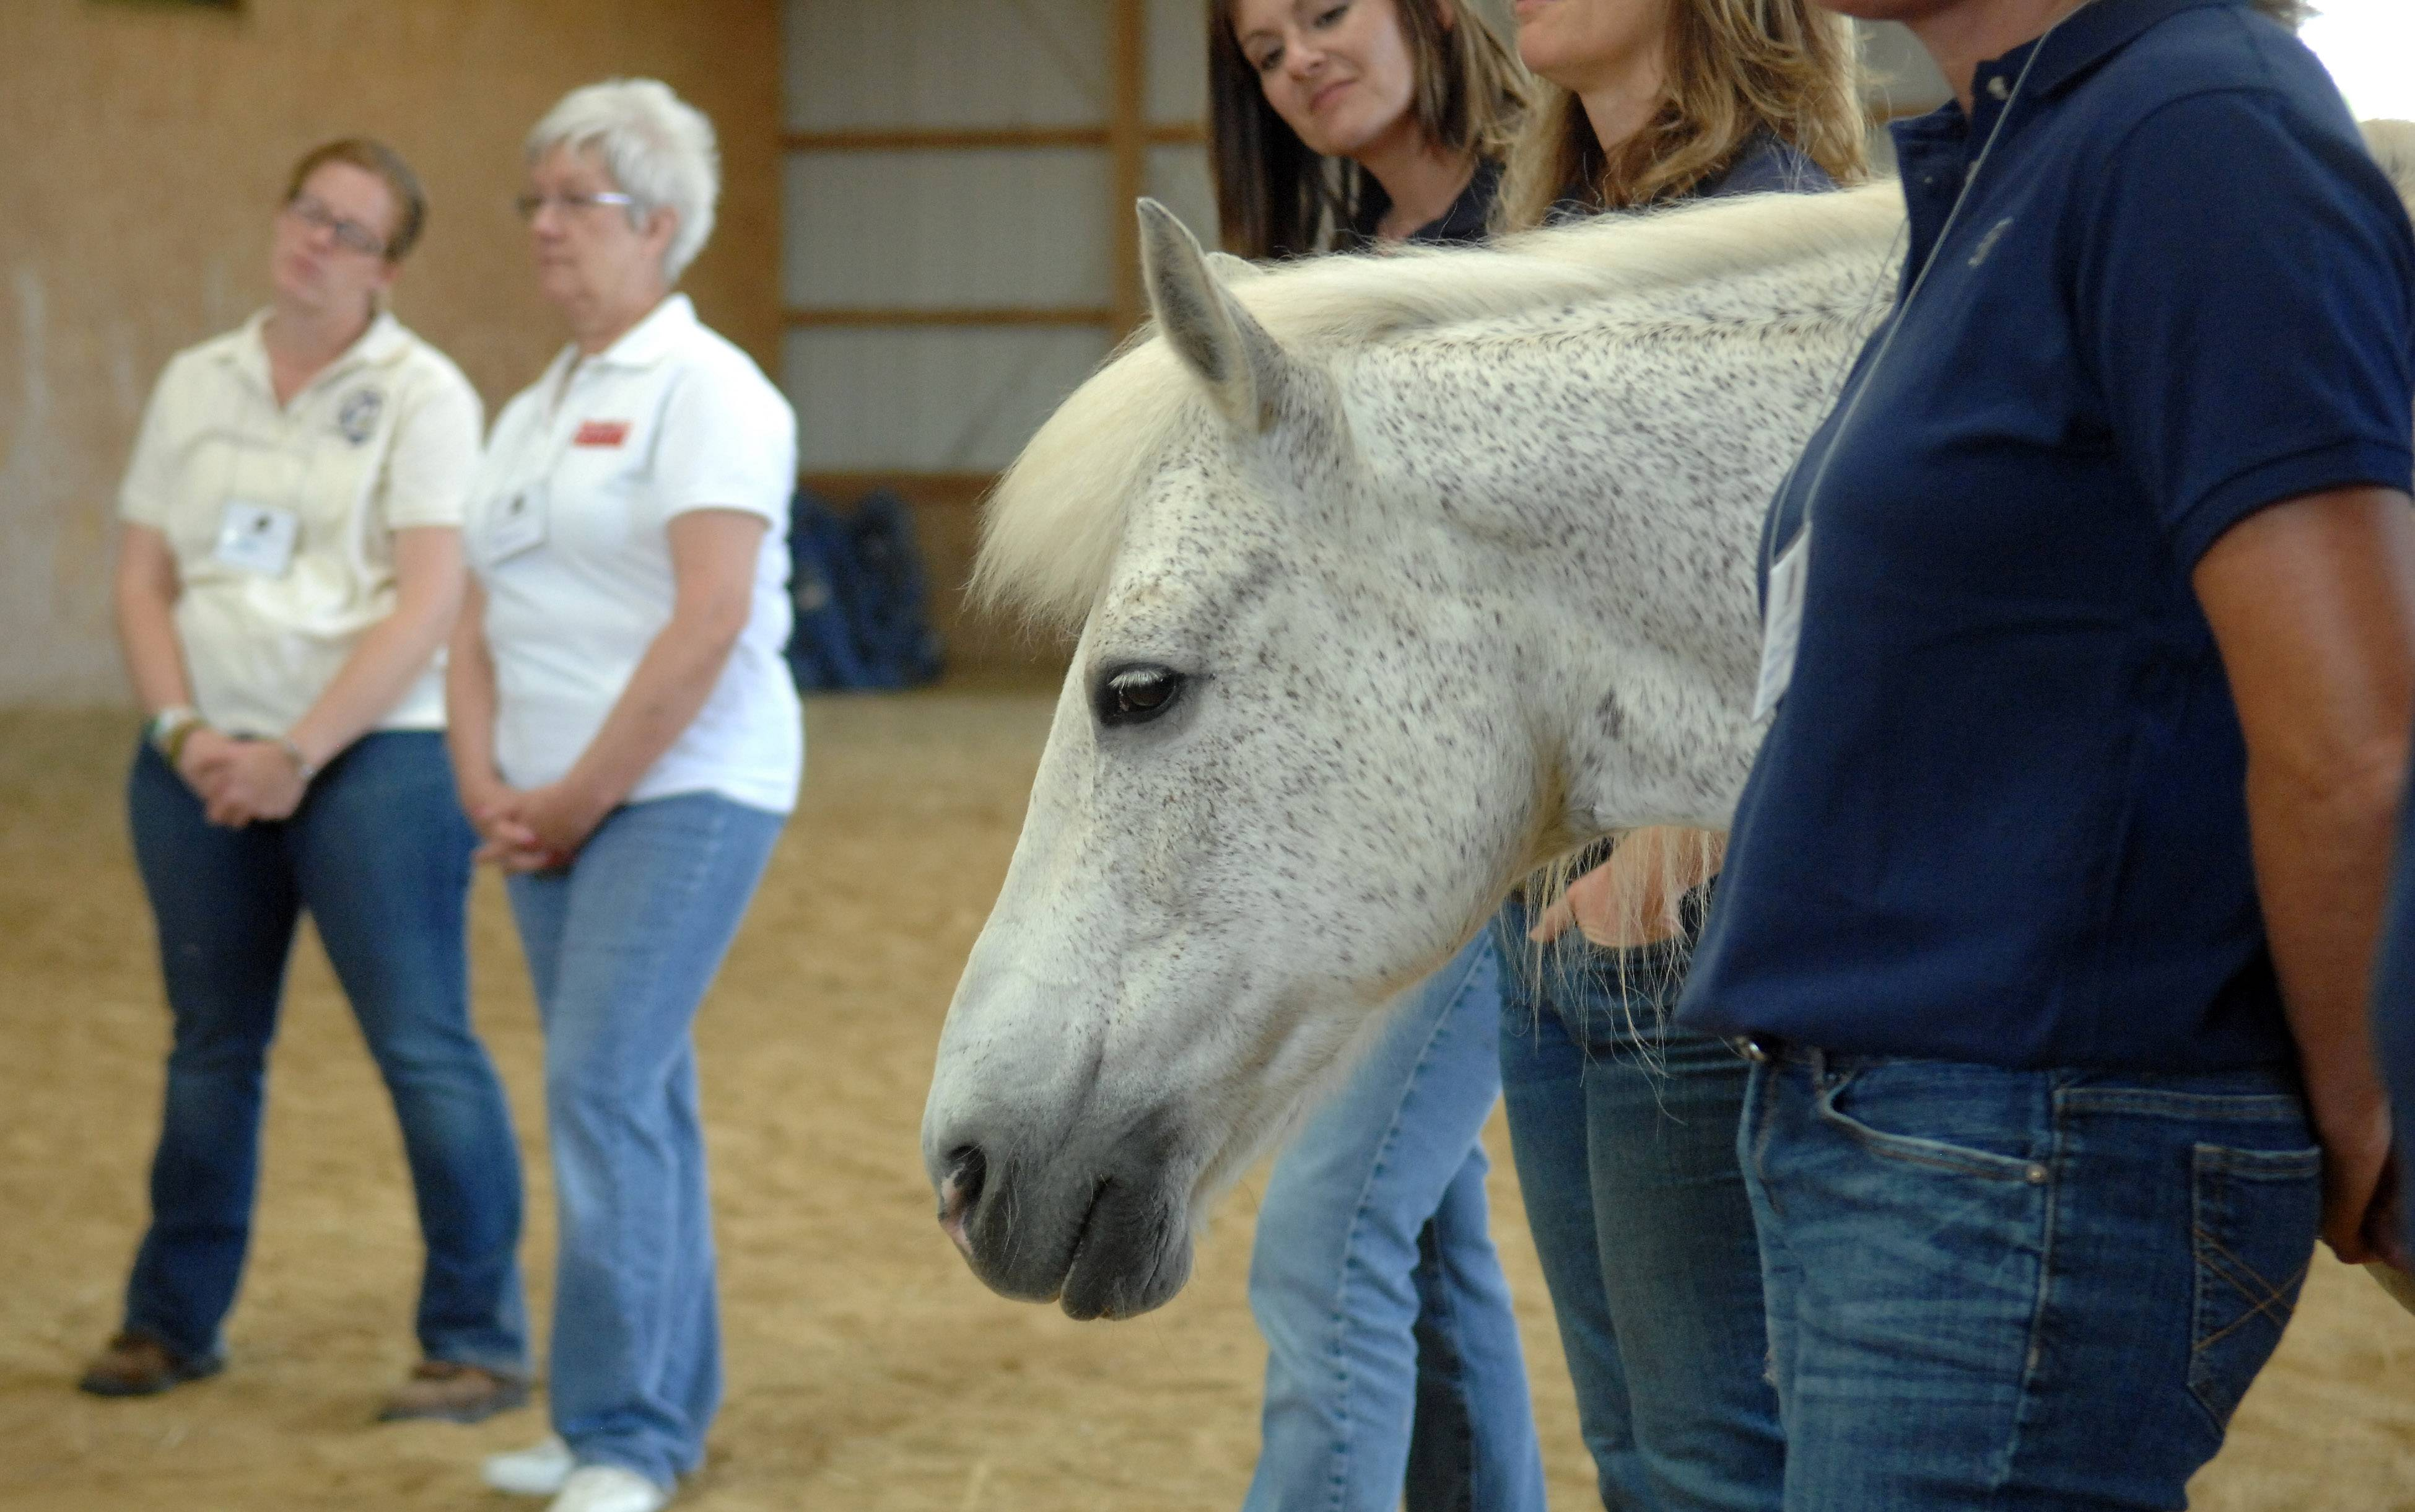 One of the therapy horses pokes his head into the action Monday at an equine-assisted therapy demonstration Monday at Reins of Change in Elgin.